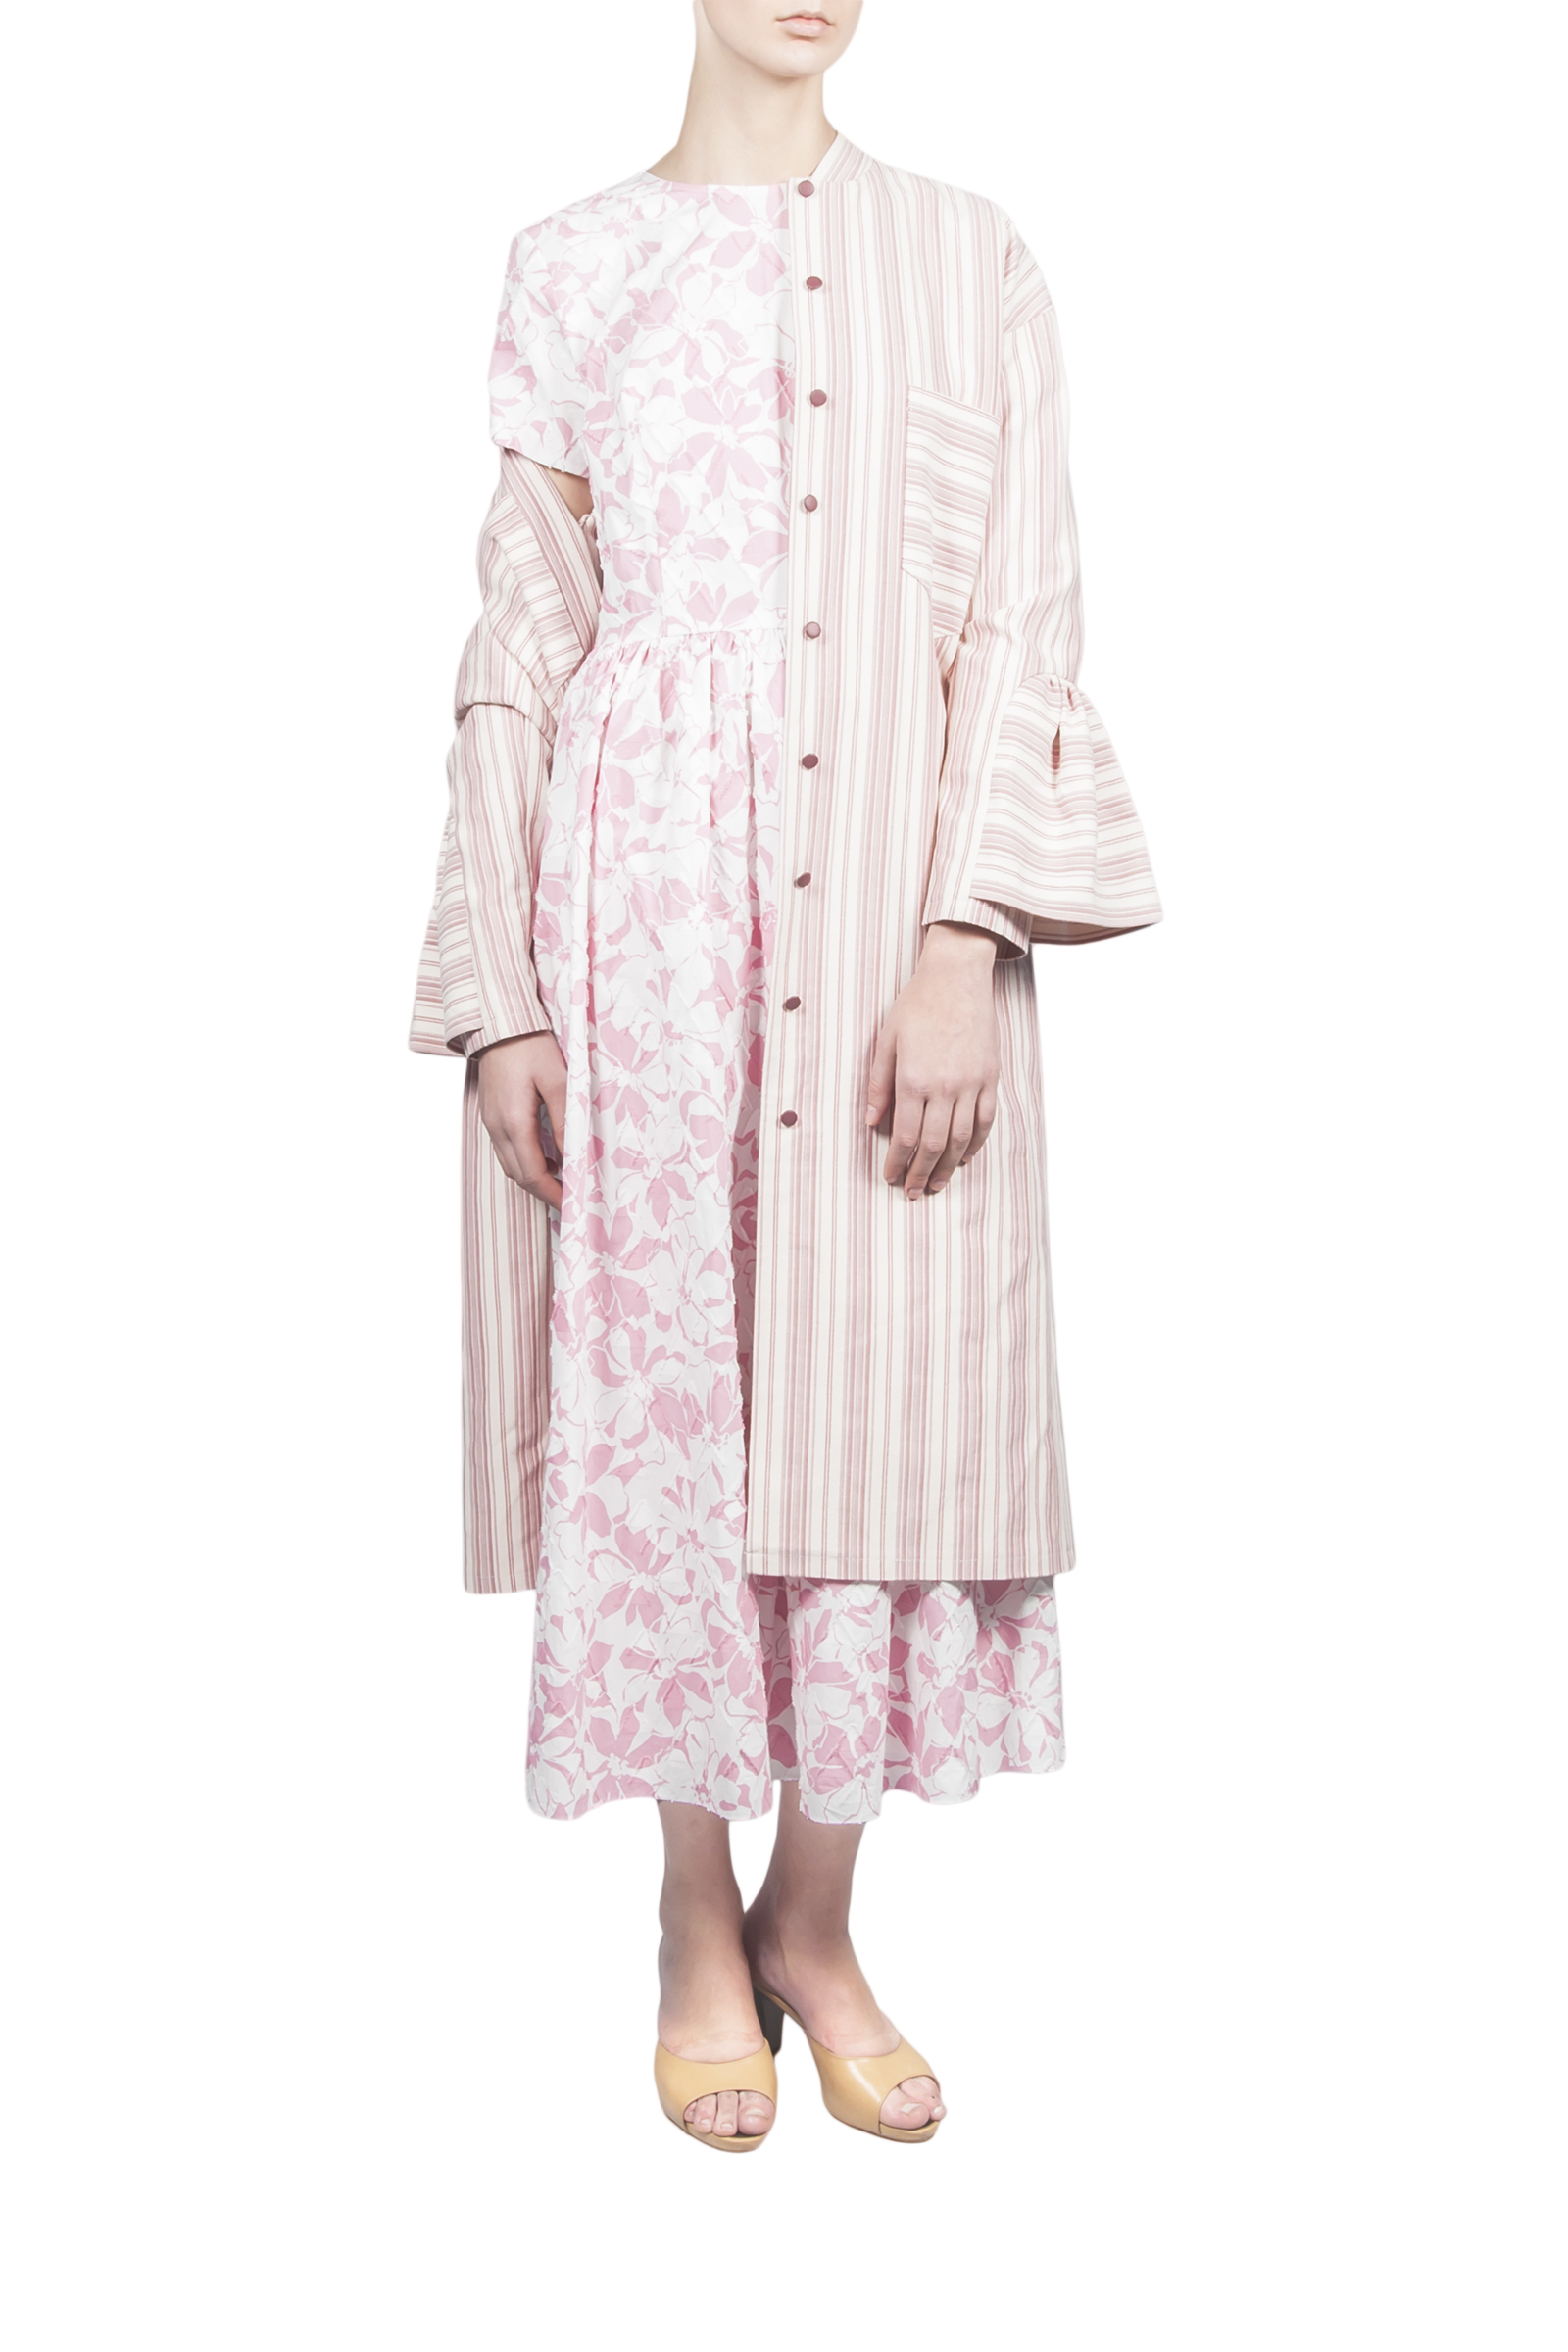 suitster-poustovit-ss17-buy-10